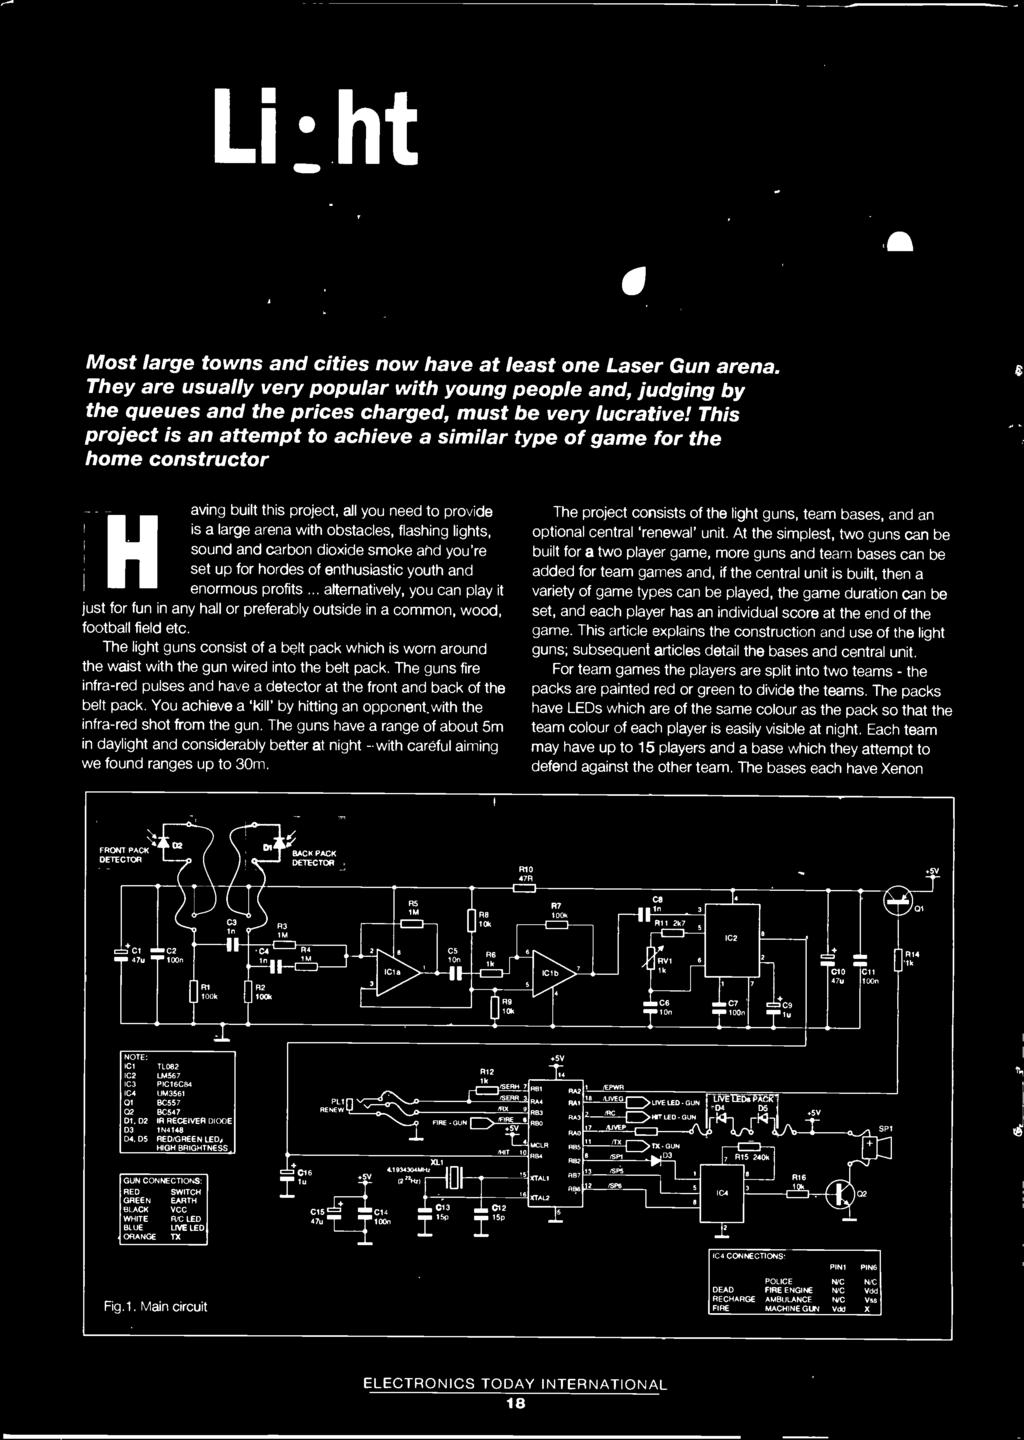 Electronics Today International Plus I O Ports For An Disk Make A In Stripboard Layout The Um3561 Sound Effect Circuit Shown Alternatively You Can Play It Just Fun Any Hall Or Preferably